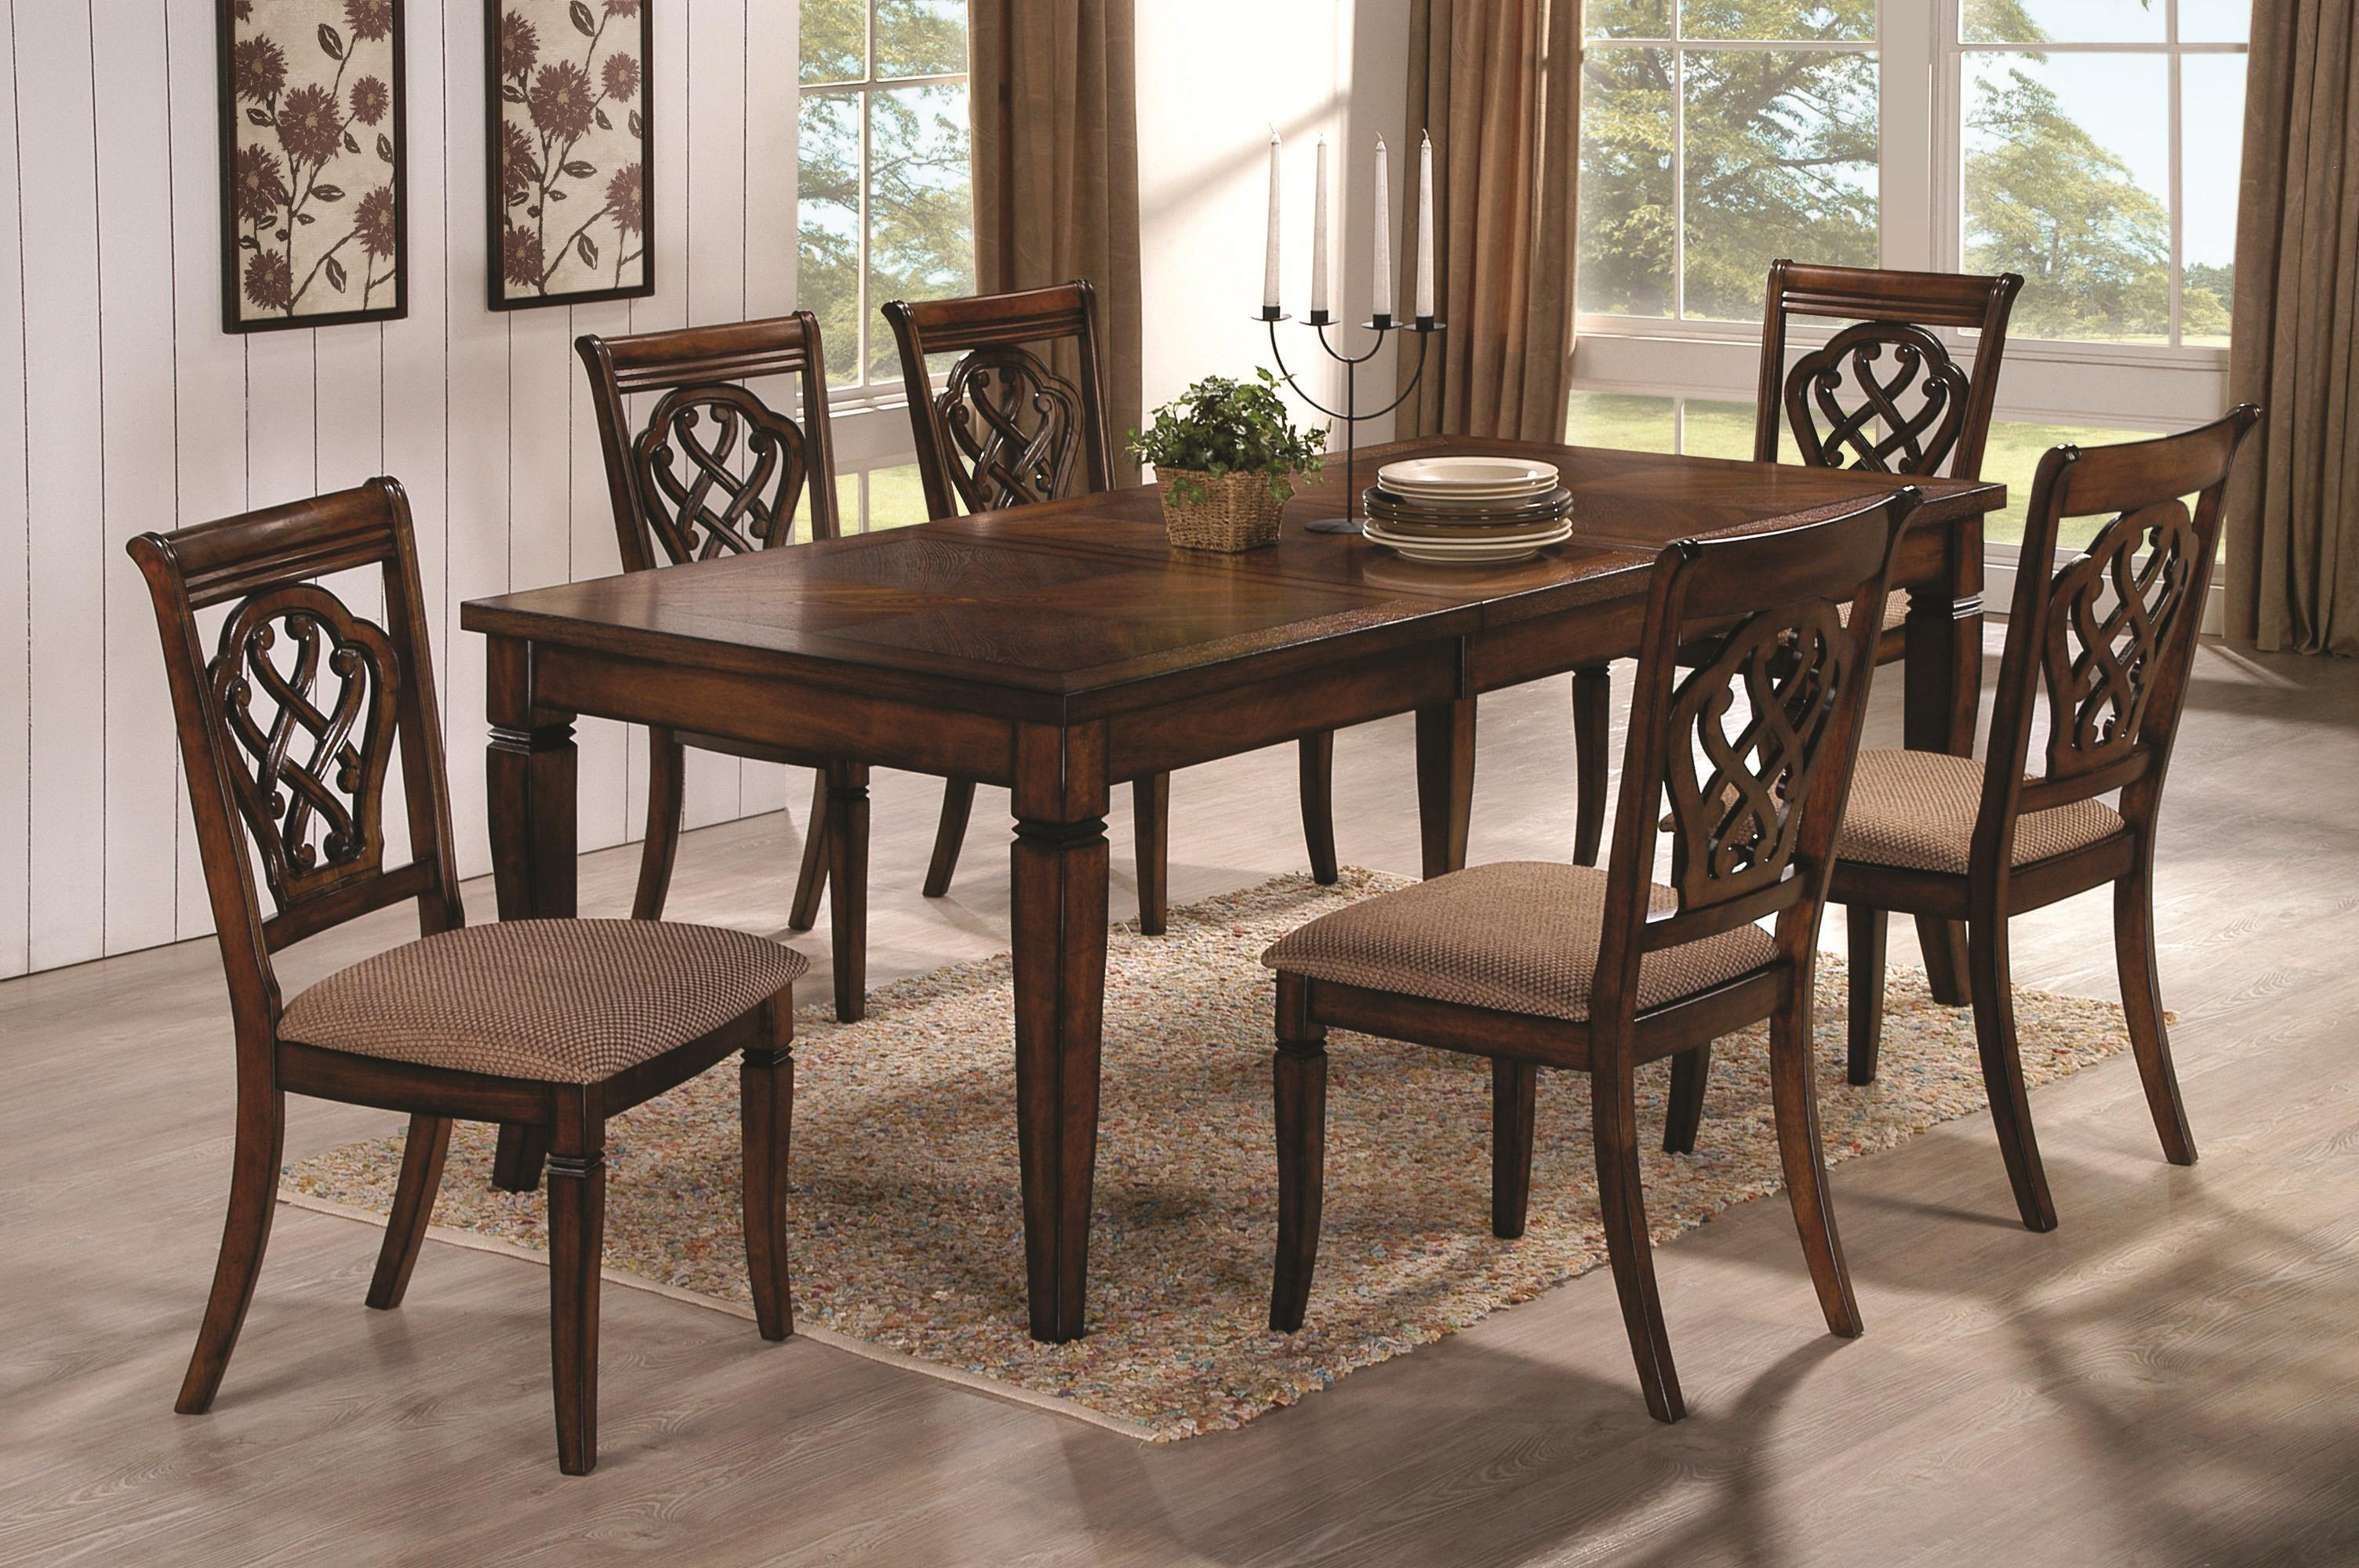 Coaster Dining 10339 Dining Table U0026 Chair Set   Item Number: 103391+2